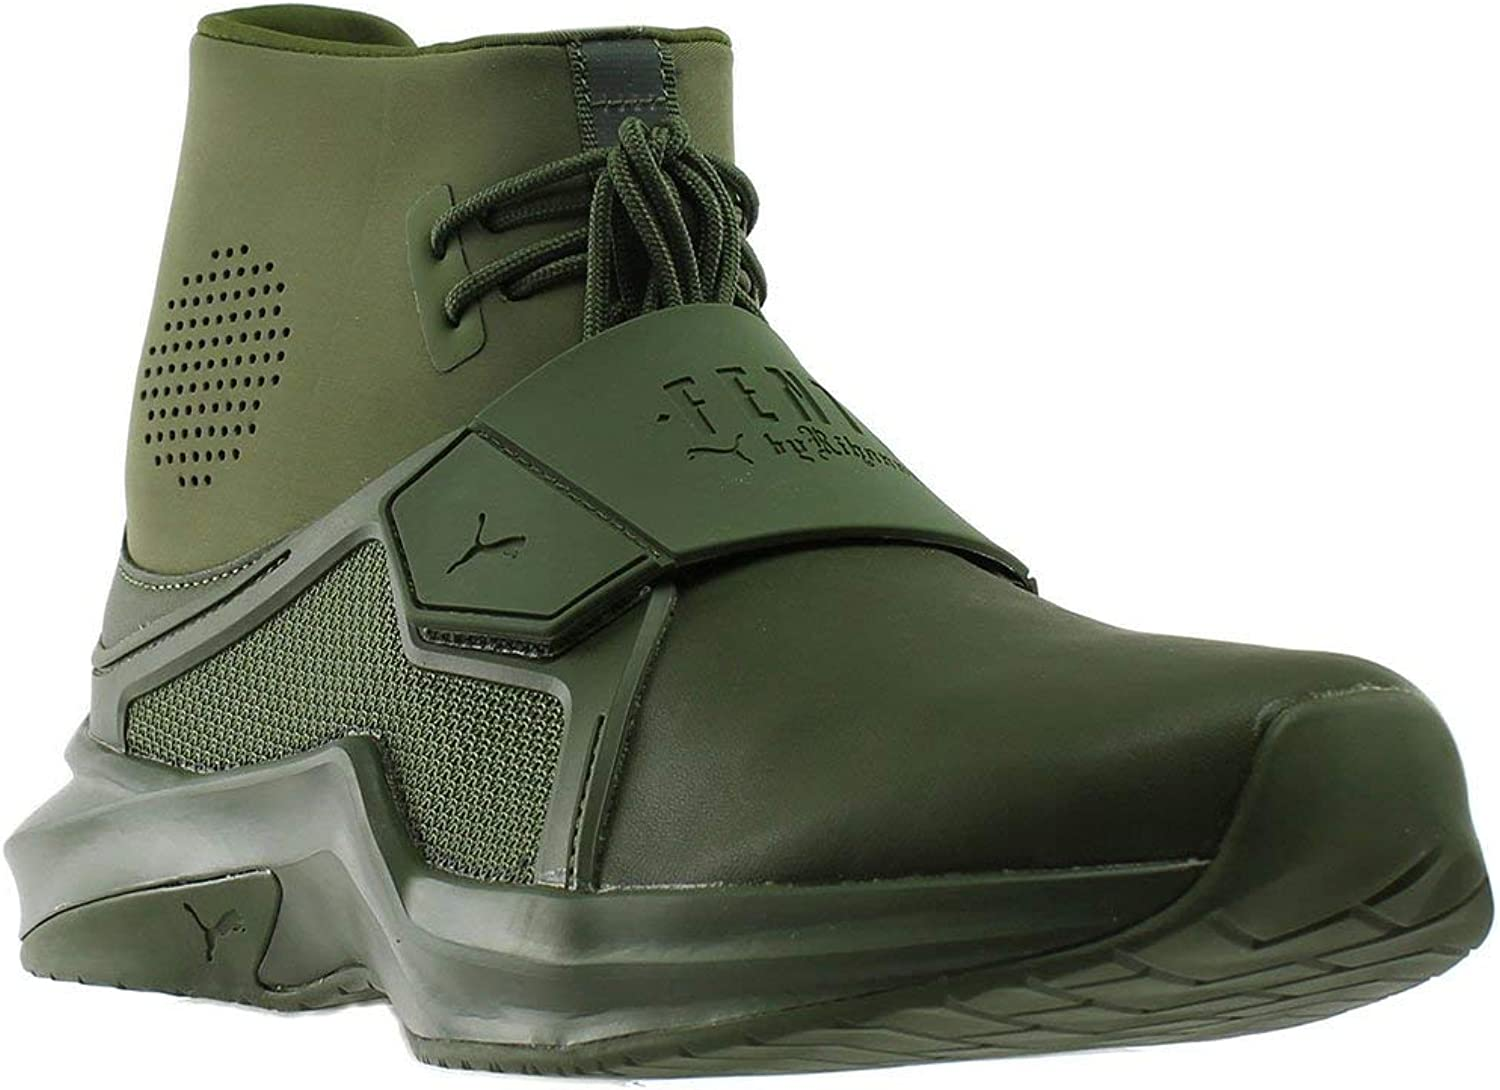 PUMA Women's The Trainer Hi by Fenty Ankle-High Fashion Sneaker